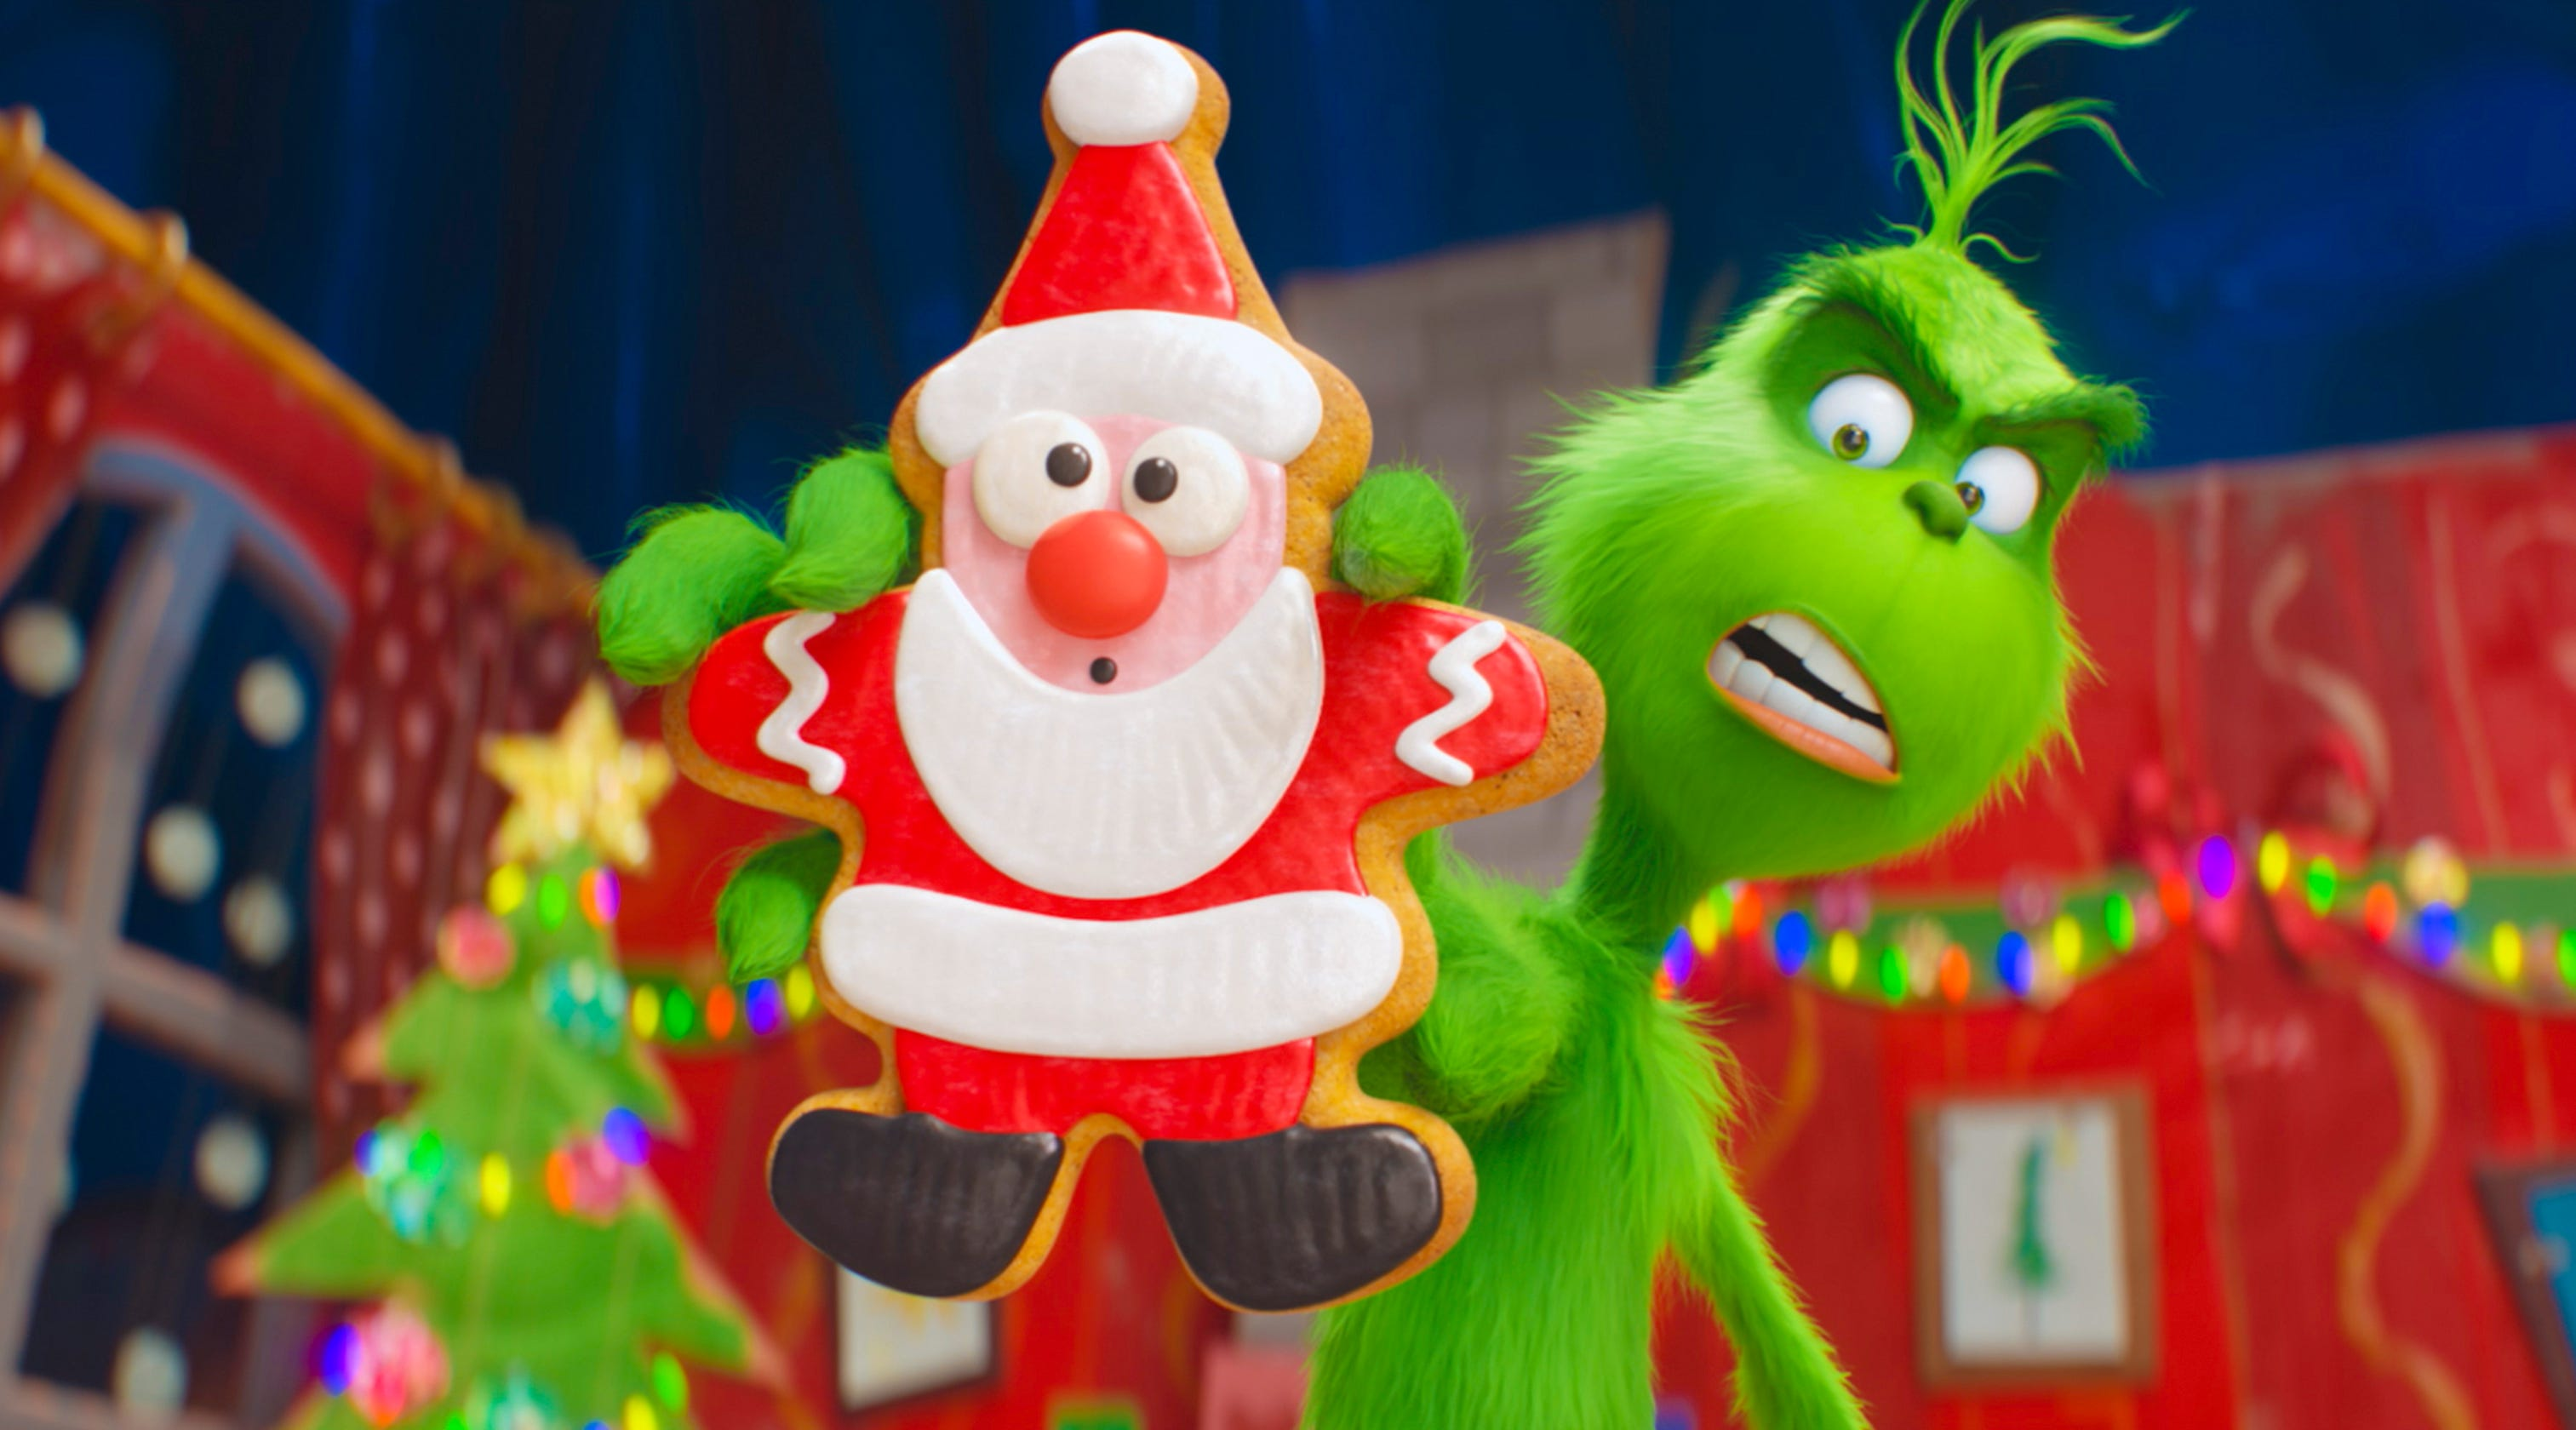 the grinch arrives with some excess padding - The Grinch Themed Christmas Decorations